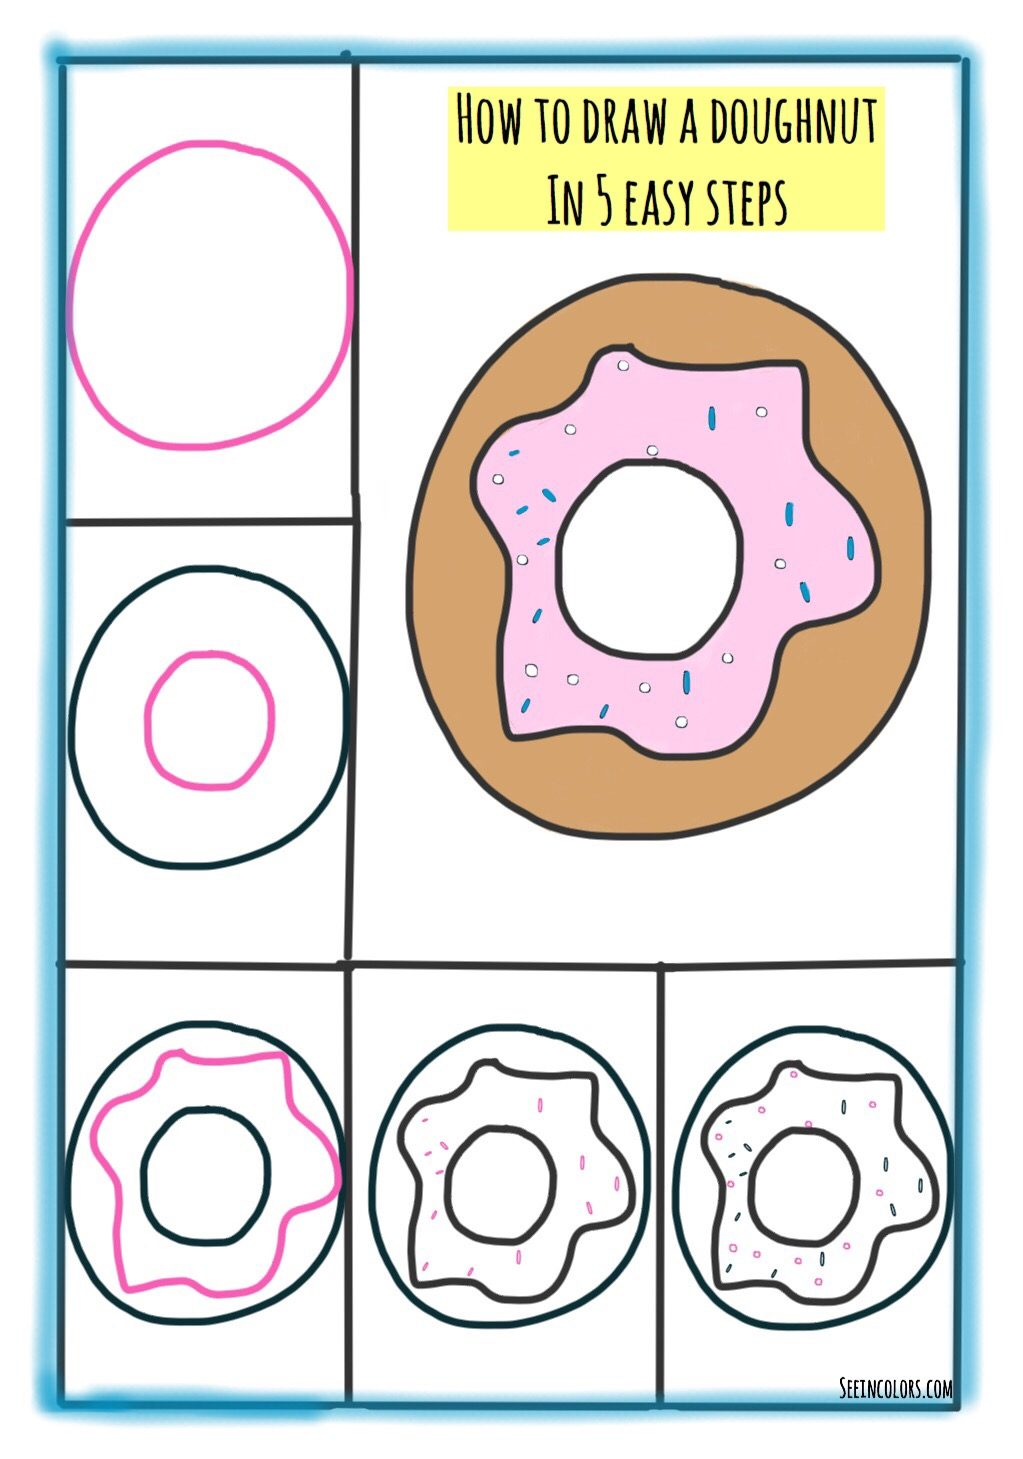 How to Draw A Doughnut, sketchnotes